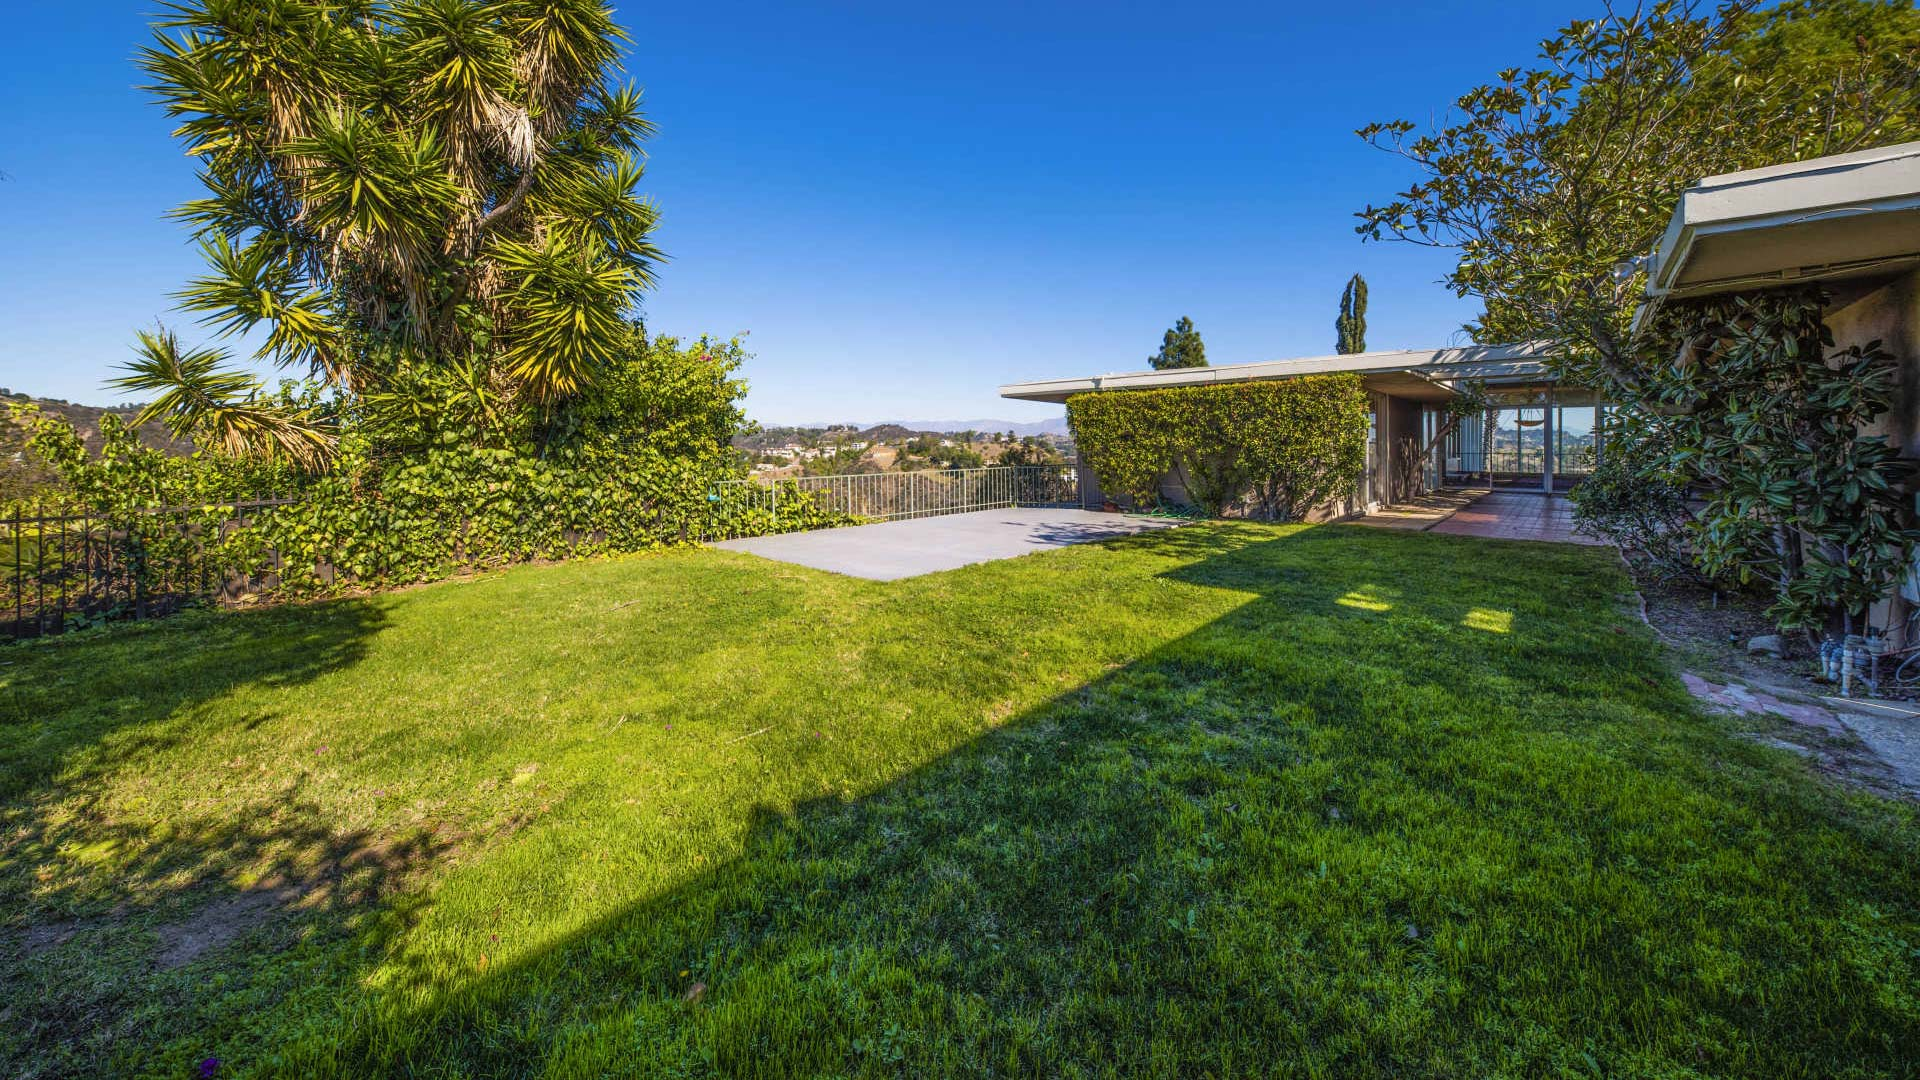 Bel Air, CA 90077 – Luxus Haus in 1298 Stradella Road – $6,495,000